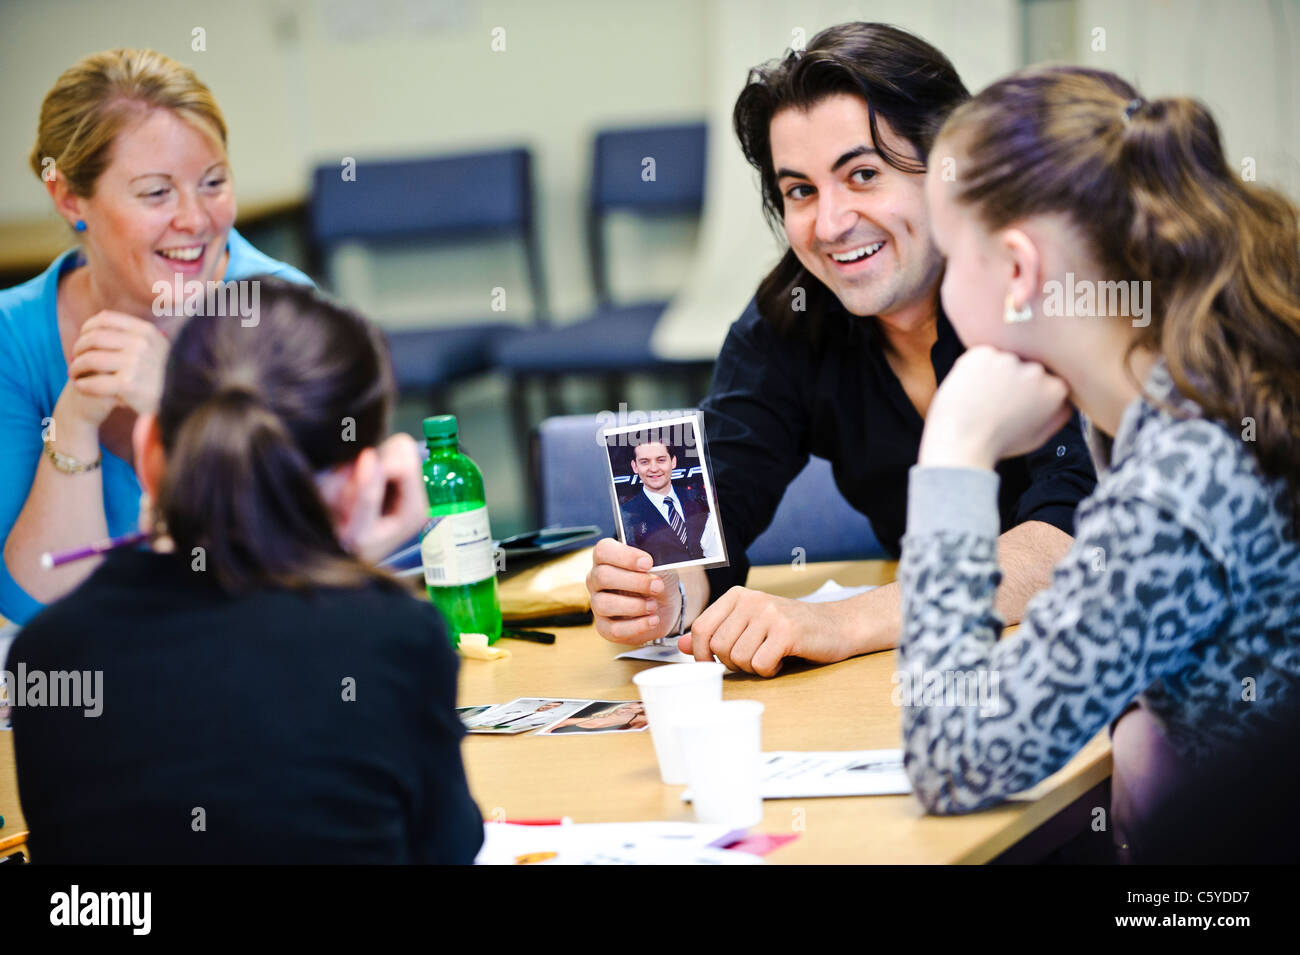 Adult teachers in classroom setting holding up a photo of a celebrity towards two school children aged 12 to 13 - Stock Image